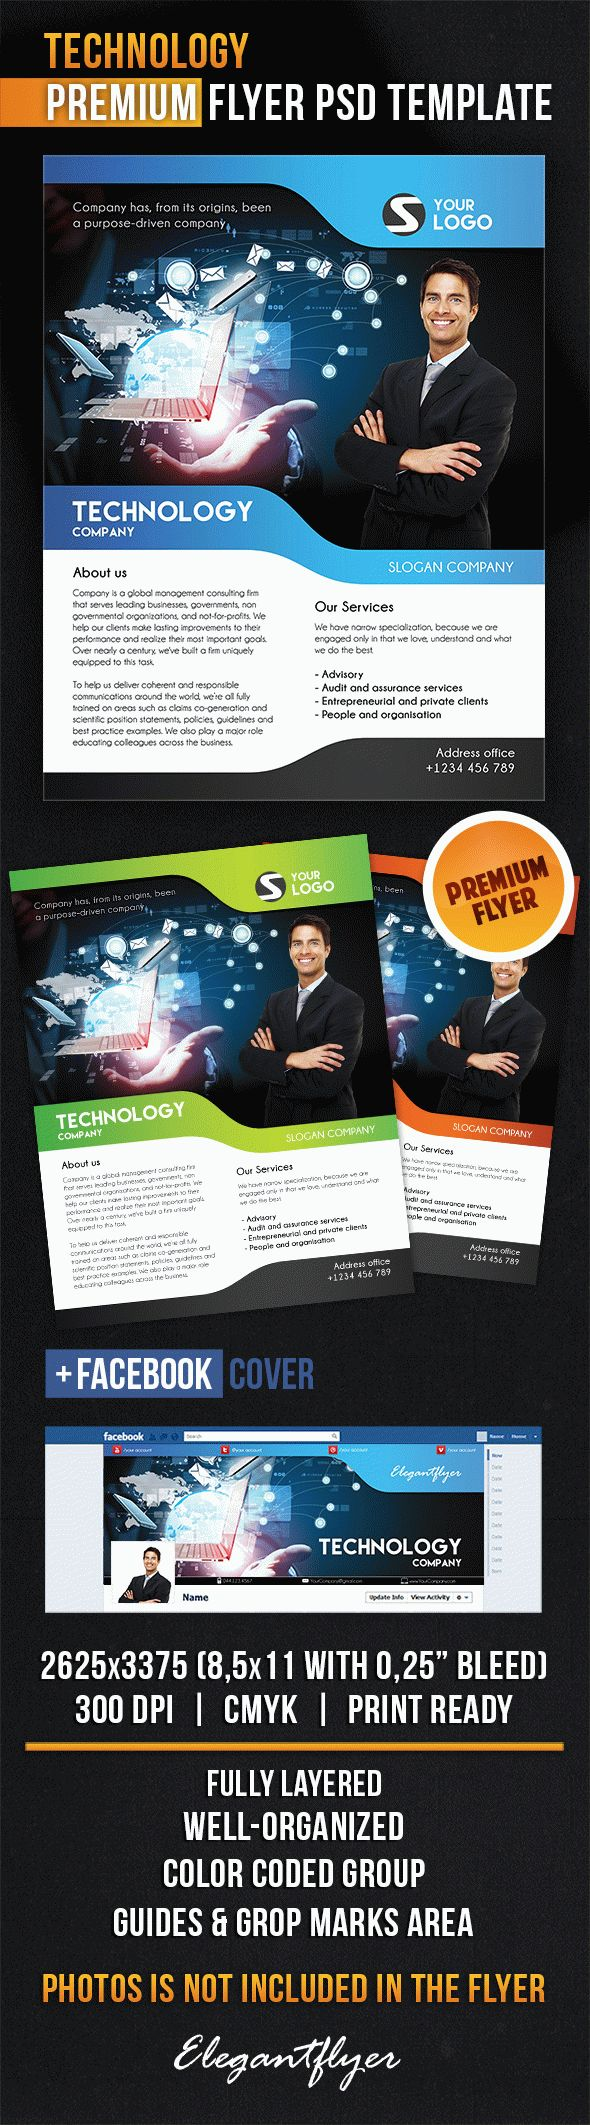 Technology Flyer PSD Template Facebook Cover By ElegantFlyer - Technology brochure template